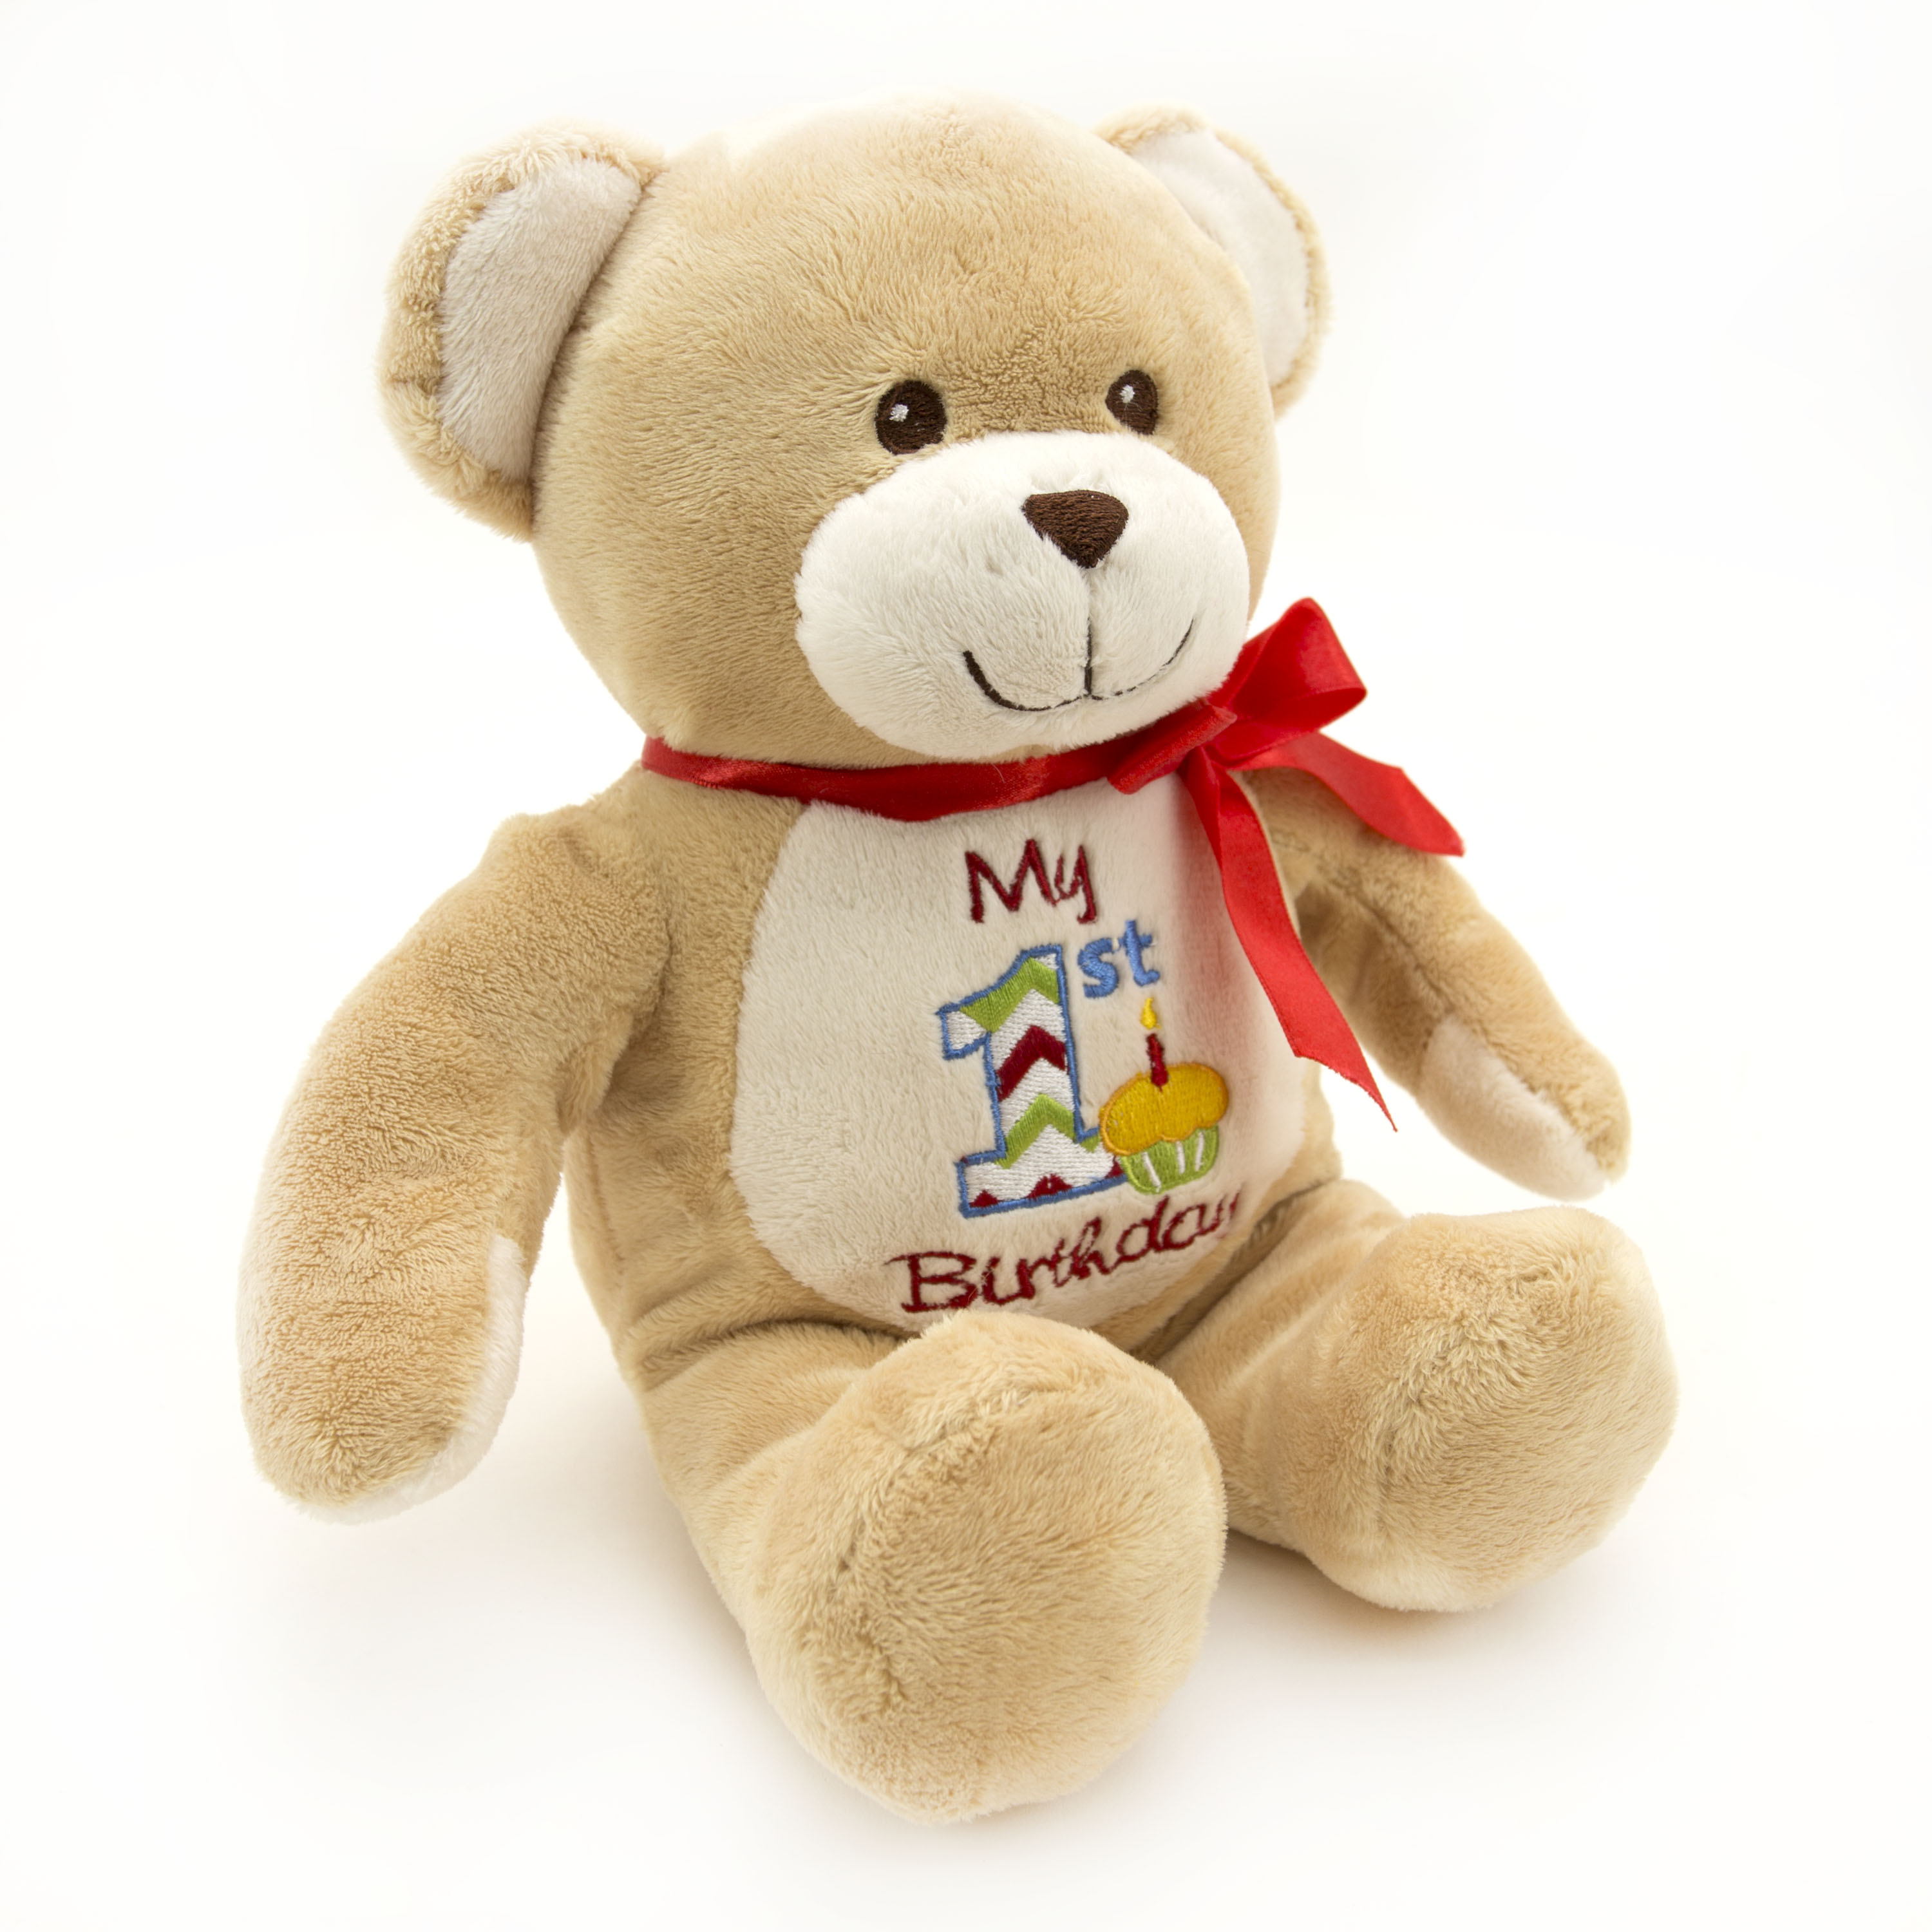 12-inch My First Birthday Plush Toy - Brown Bear